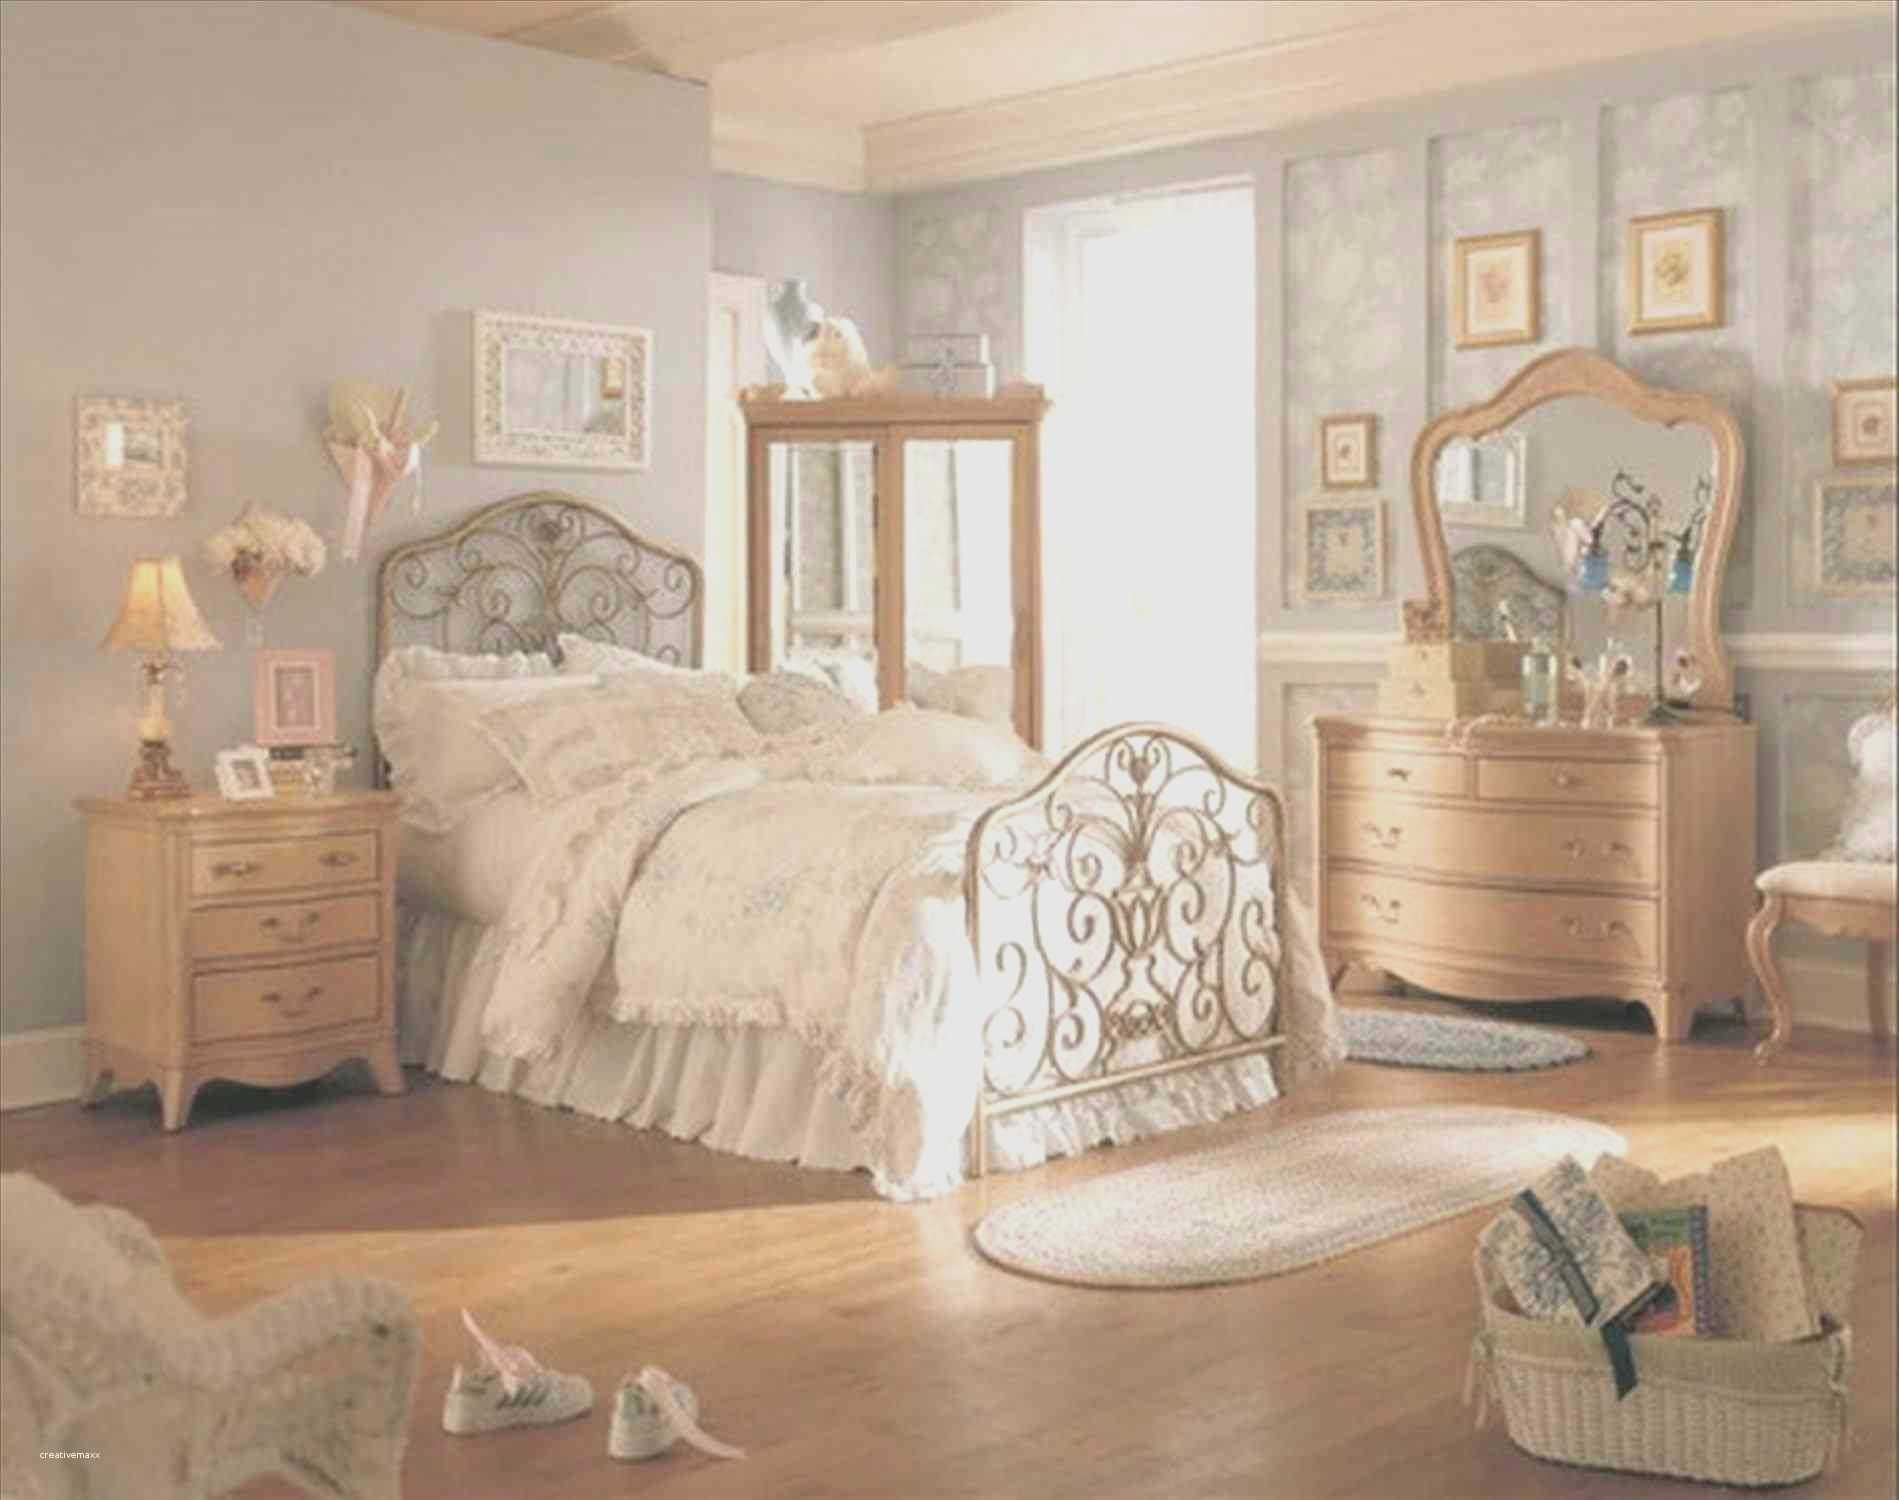 Bedroom Ideas For Teenage Girls Vintage   Beautiful Bedroom Ideas For  Teenage Girls Vintage, Chic Modern Teenage Girls Bedroom Ideas Teens Room  Bedroom ...